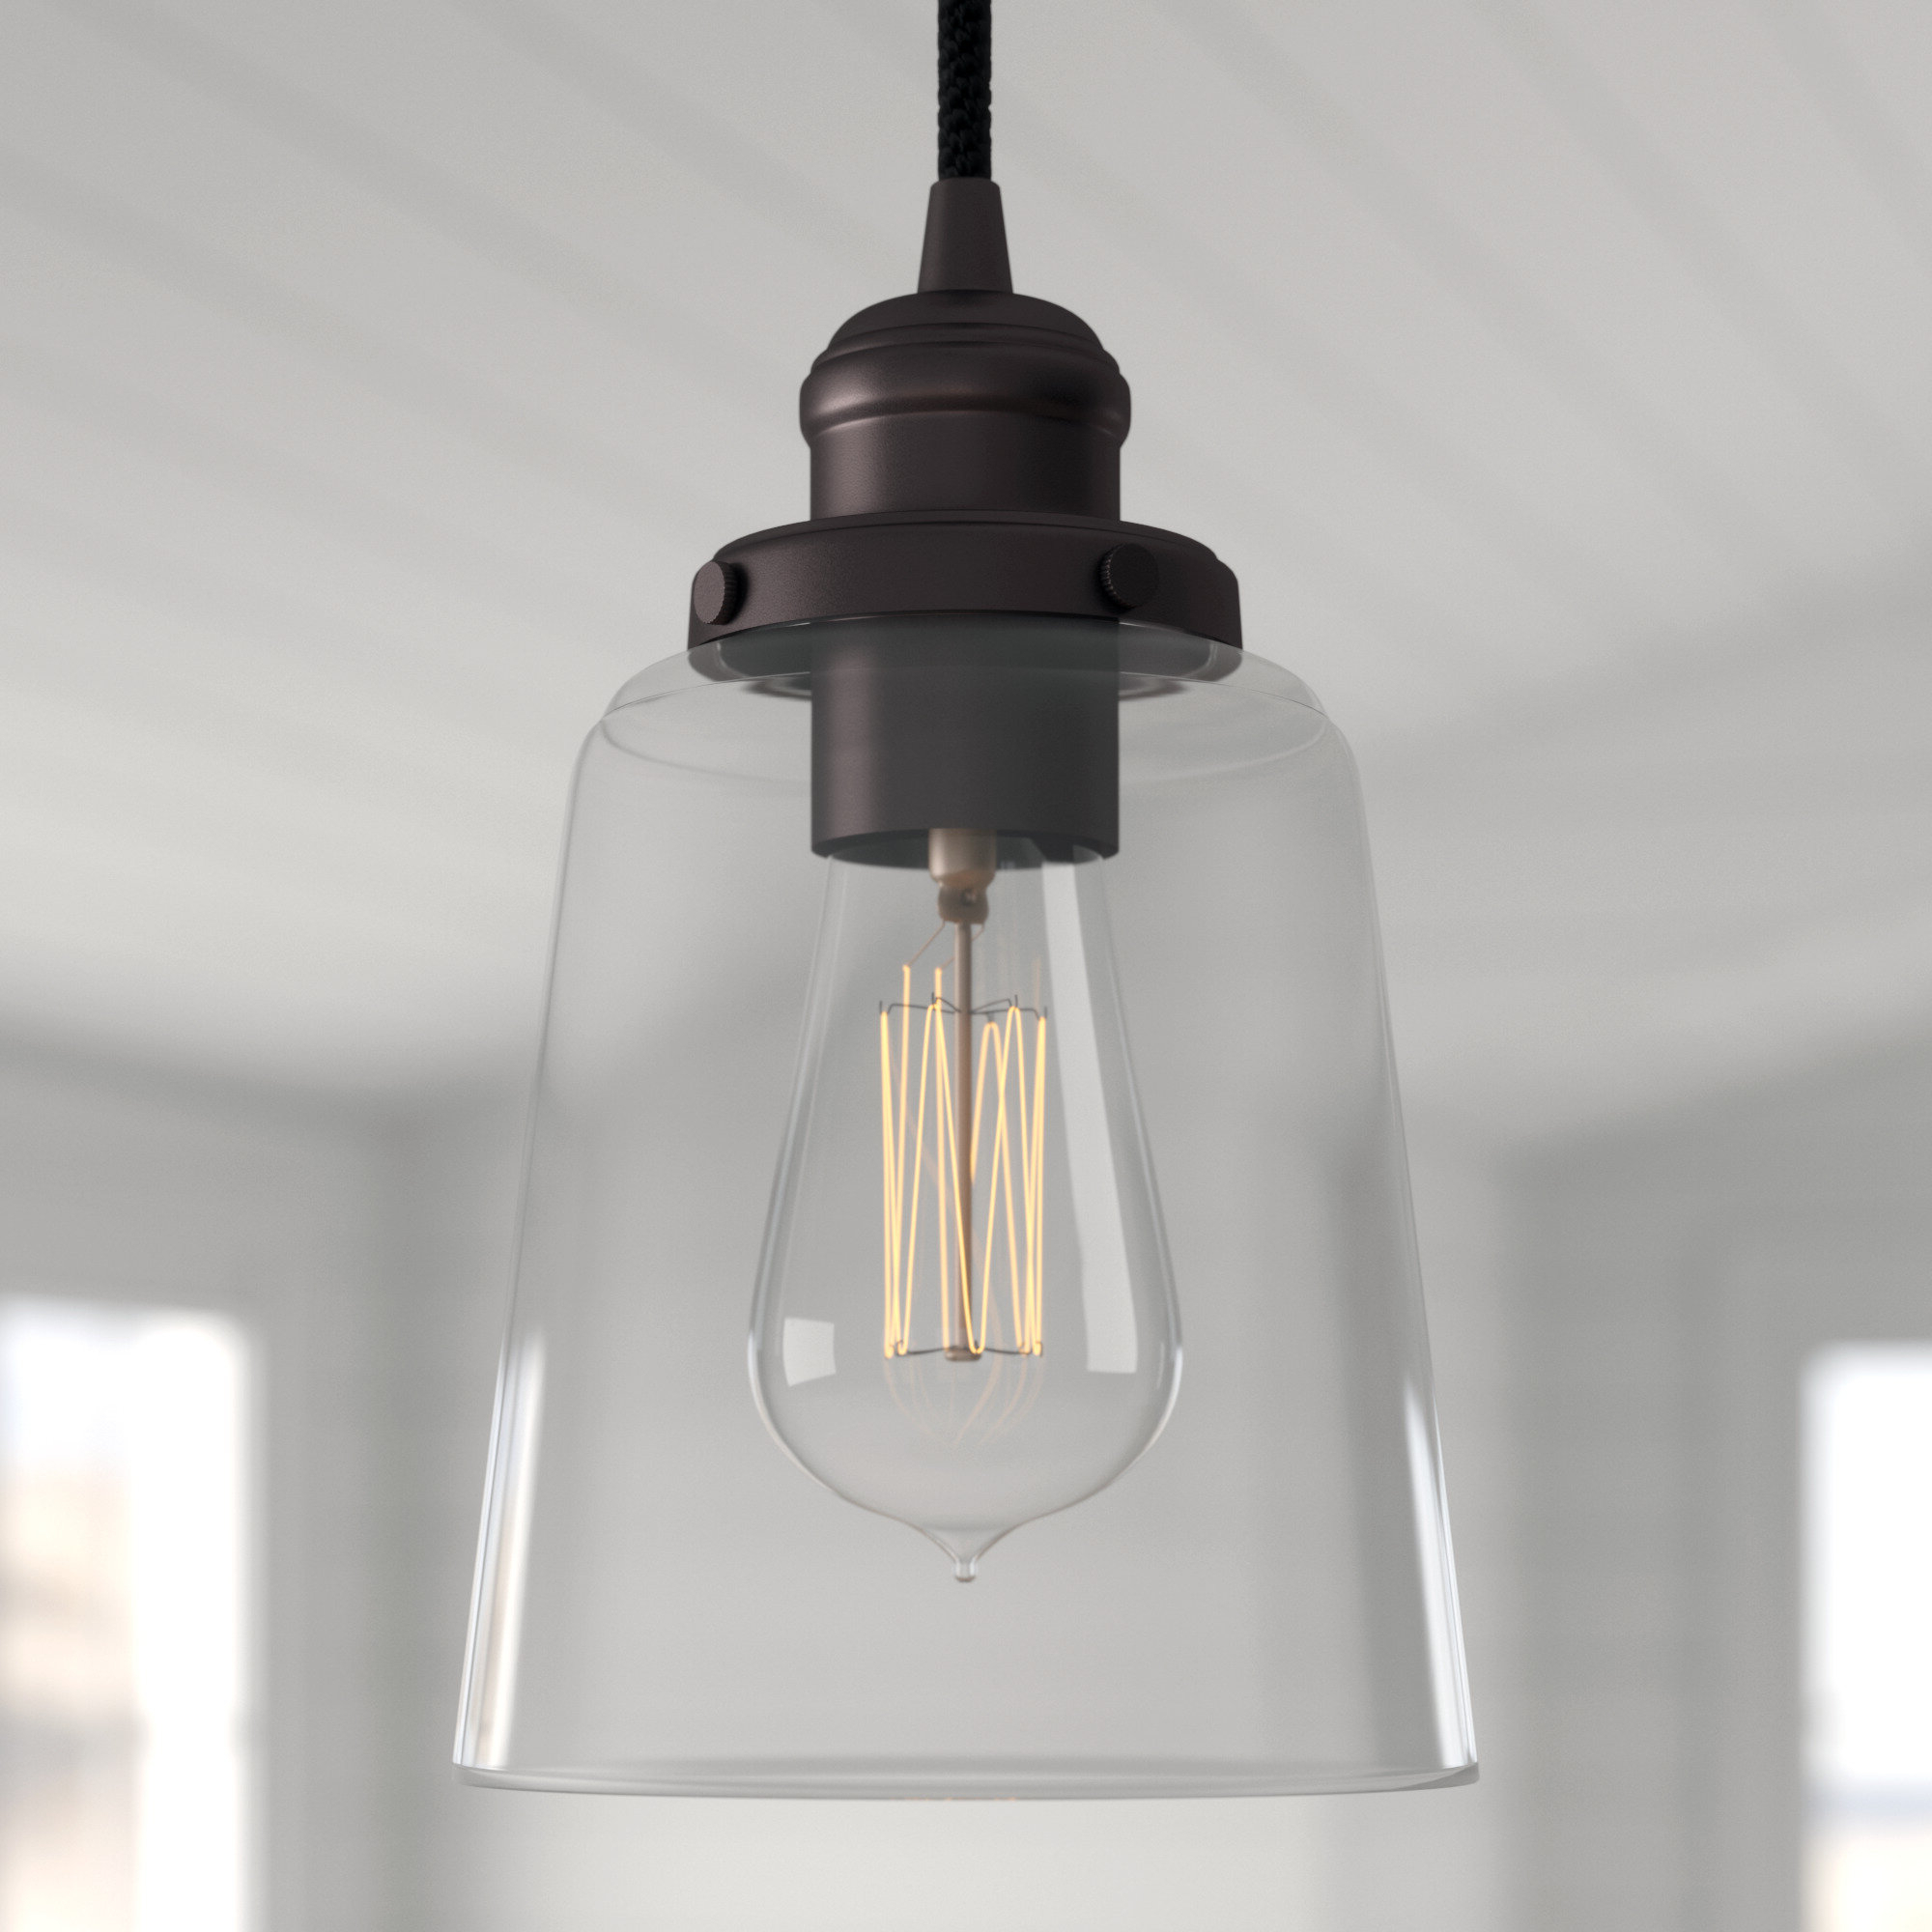 2019 1 Light Single Bell Pendant With Sargent 1 Light Single Bell Pendants (View 1 of 20)